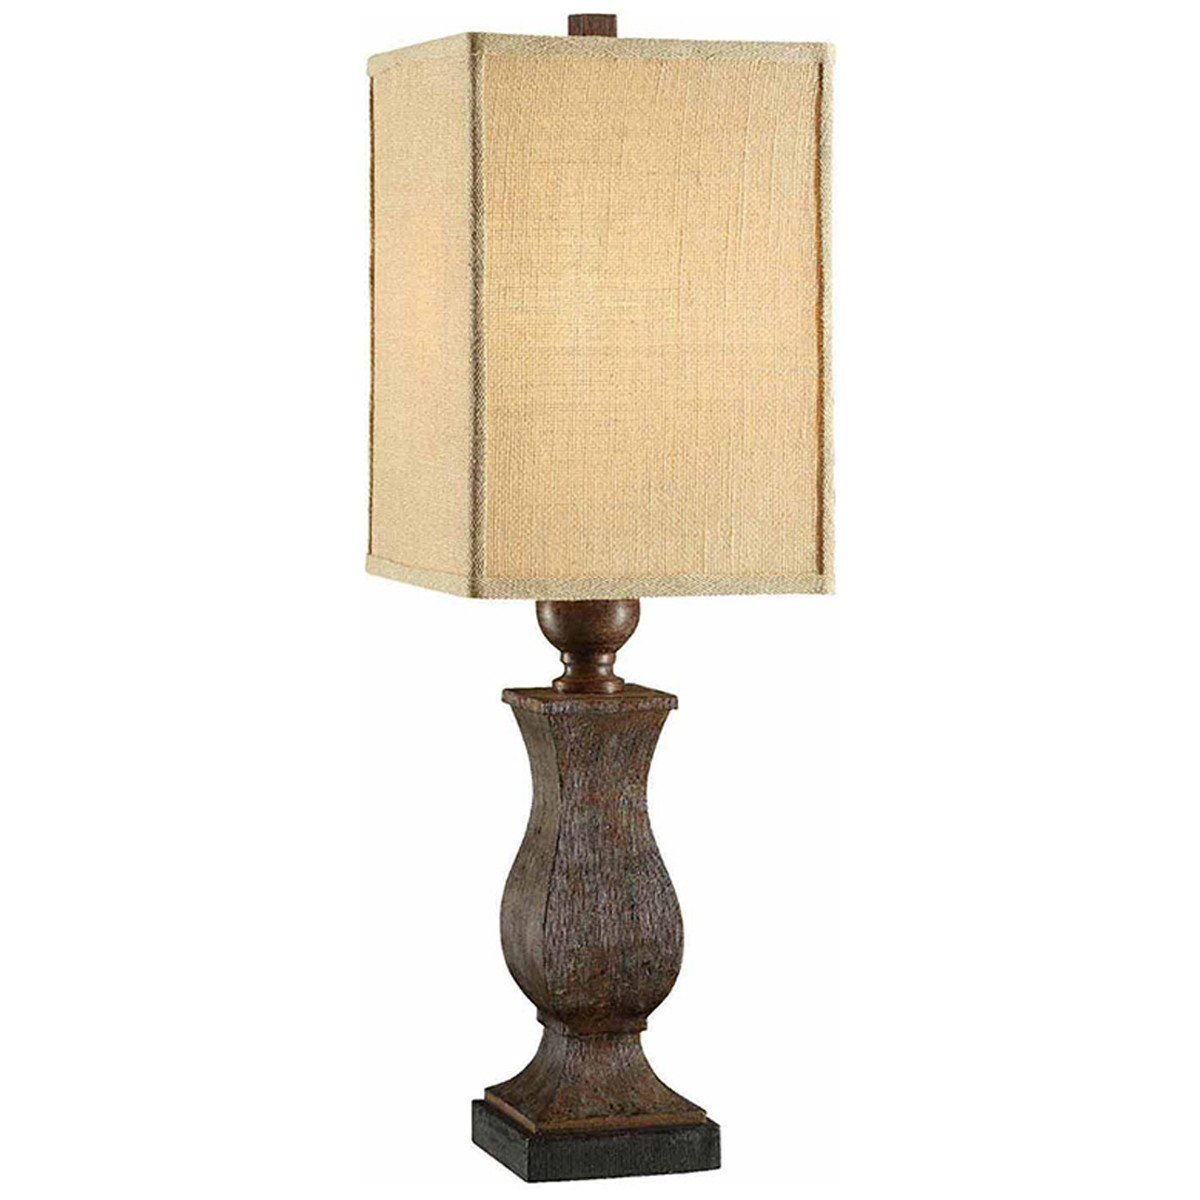 Modern Lamps For A Brighter Home Rustic Table Lamps Lamp Table Lamp